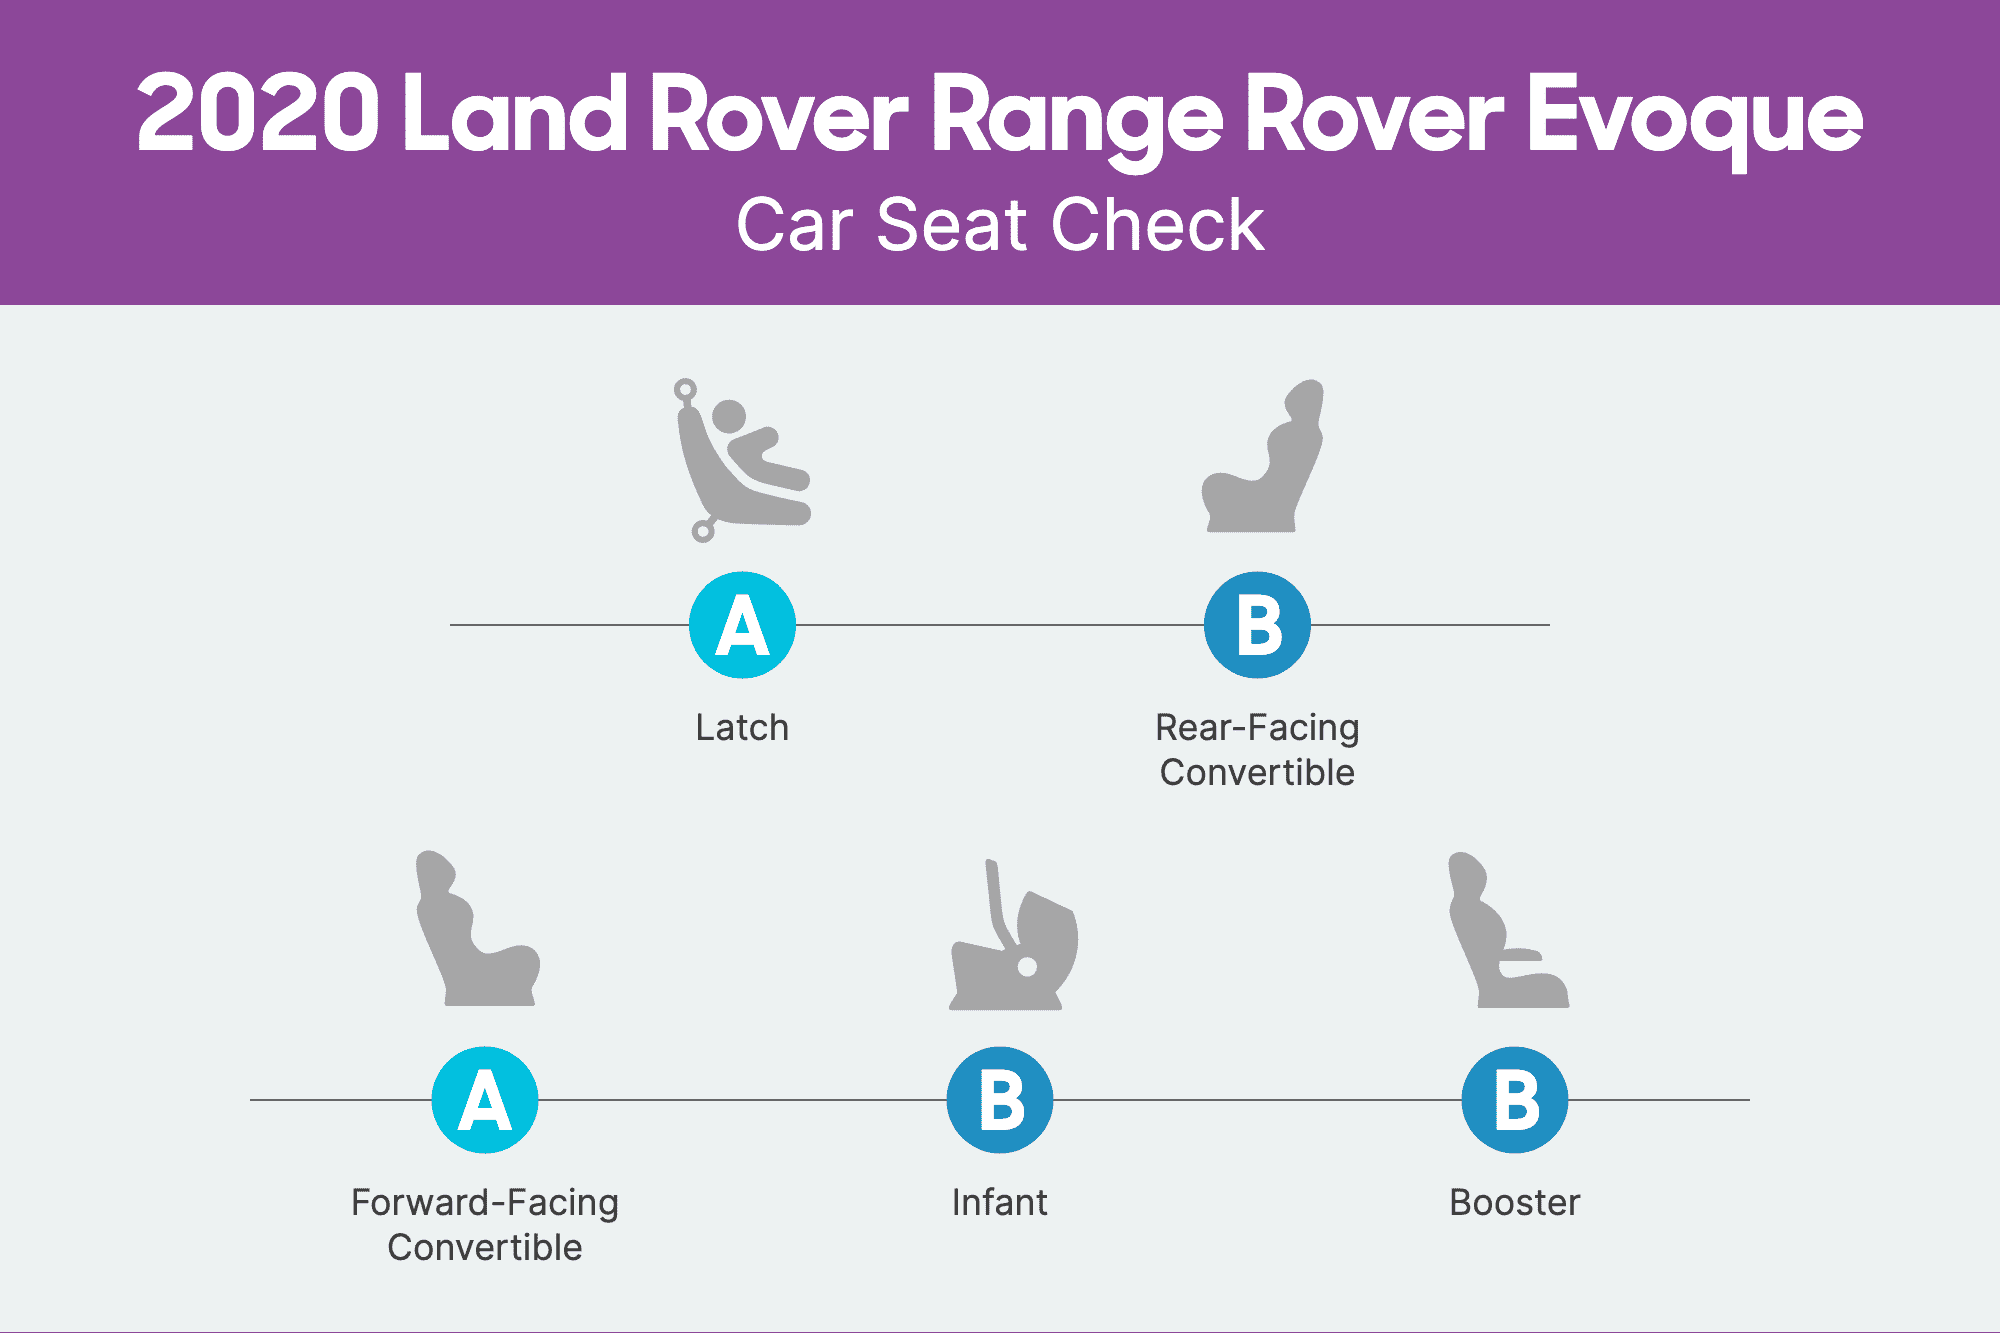 How Do Car Seats Fit in a 2020 Land Rover Range Rover Evoque?